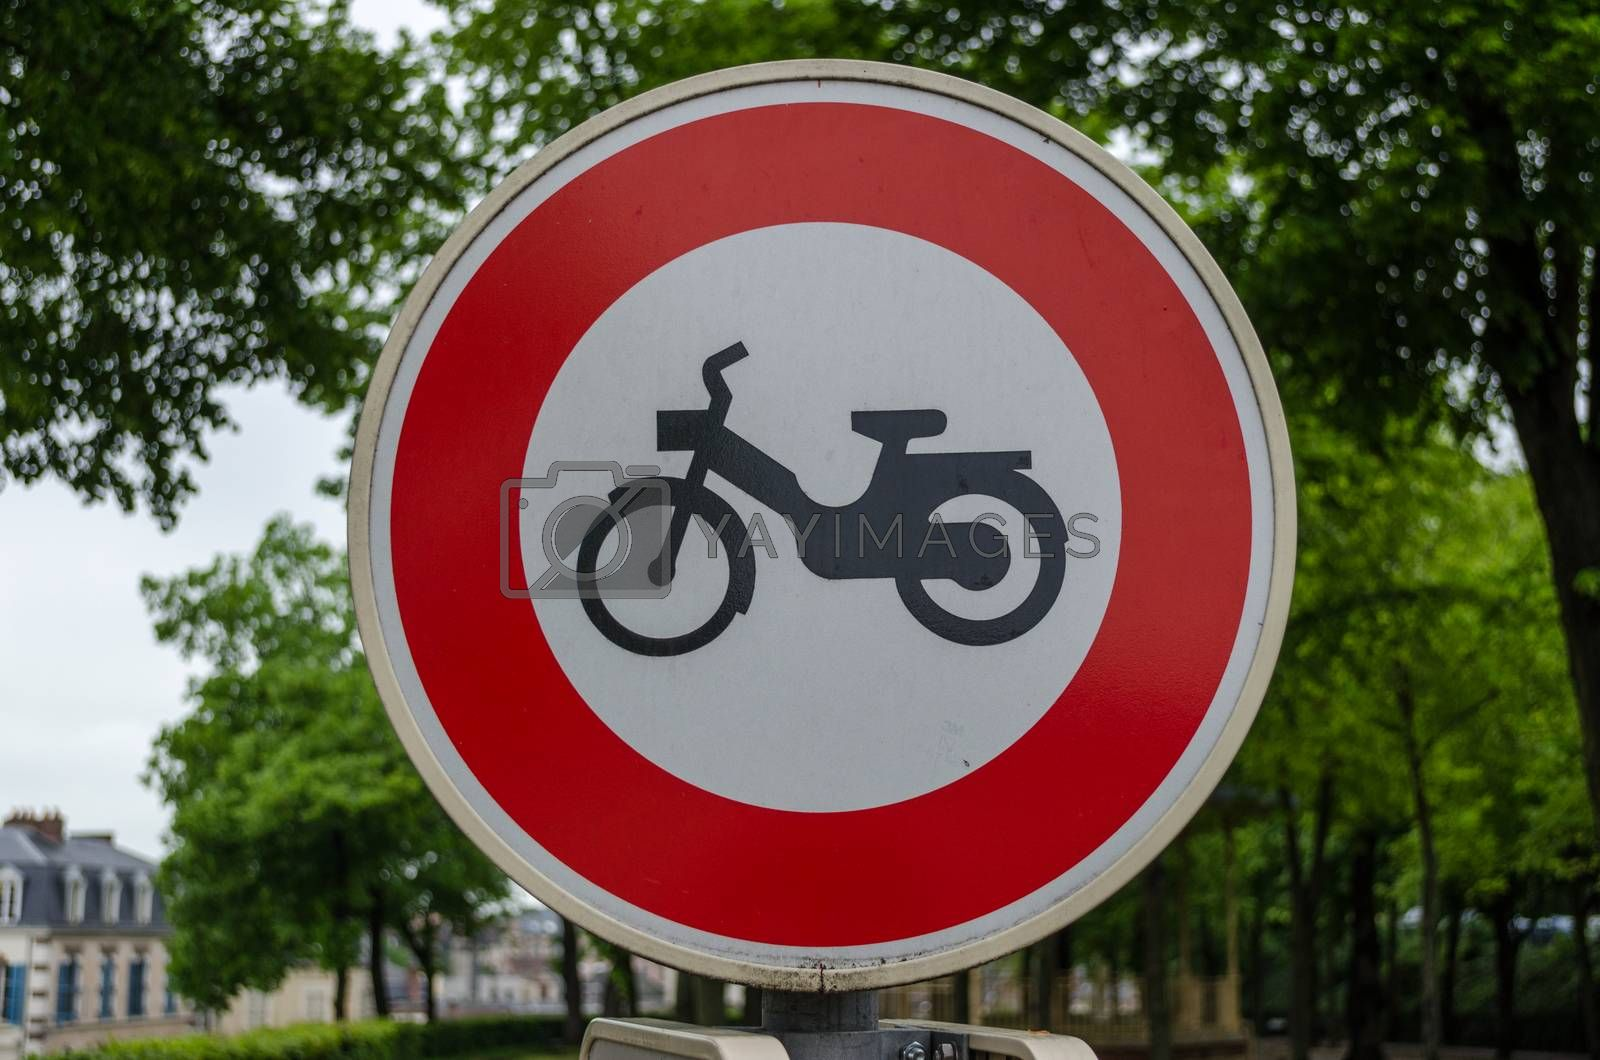 Raod sign which bans the use of mopeds or motorbikes on a road in France